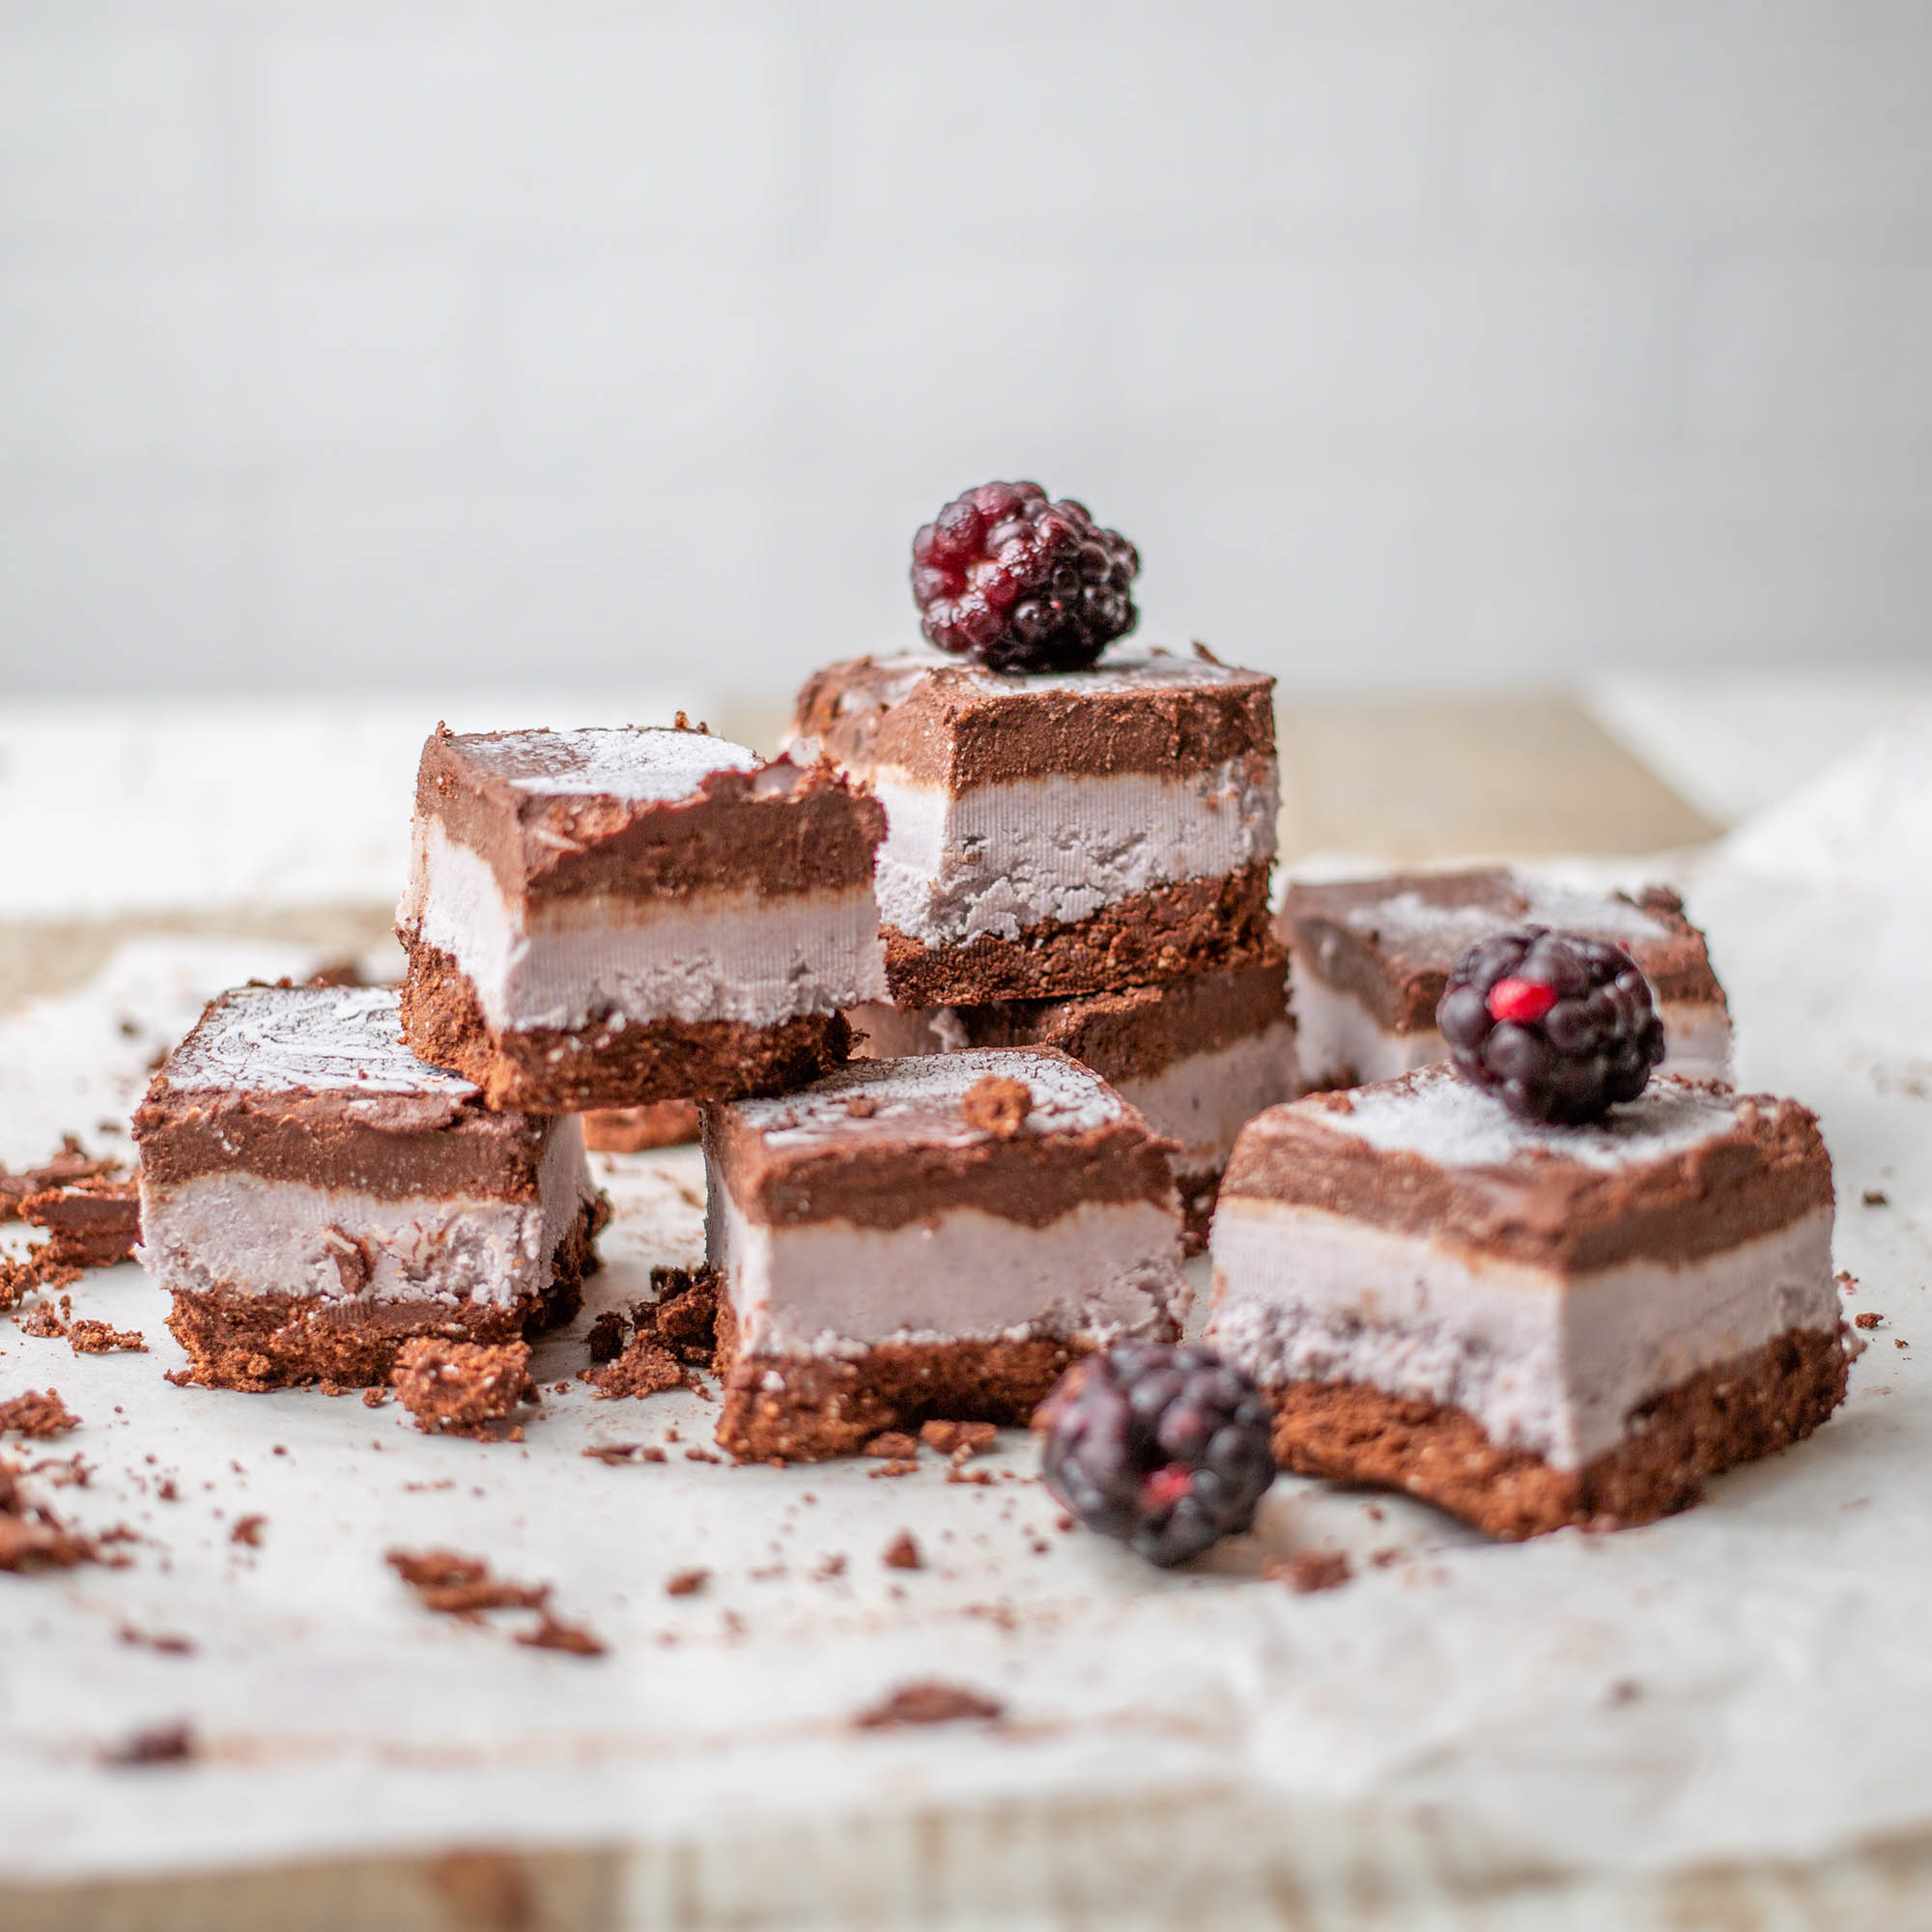 Vegan Chocolate Blackberry Ice Cream Sandwiches